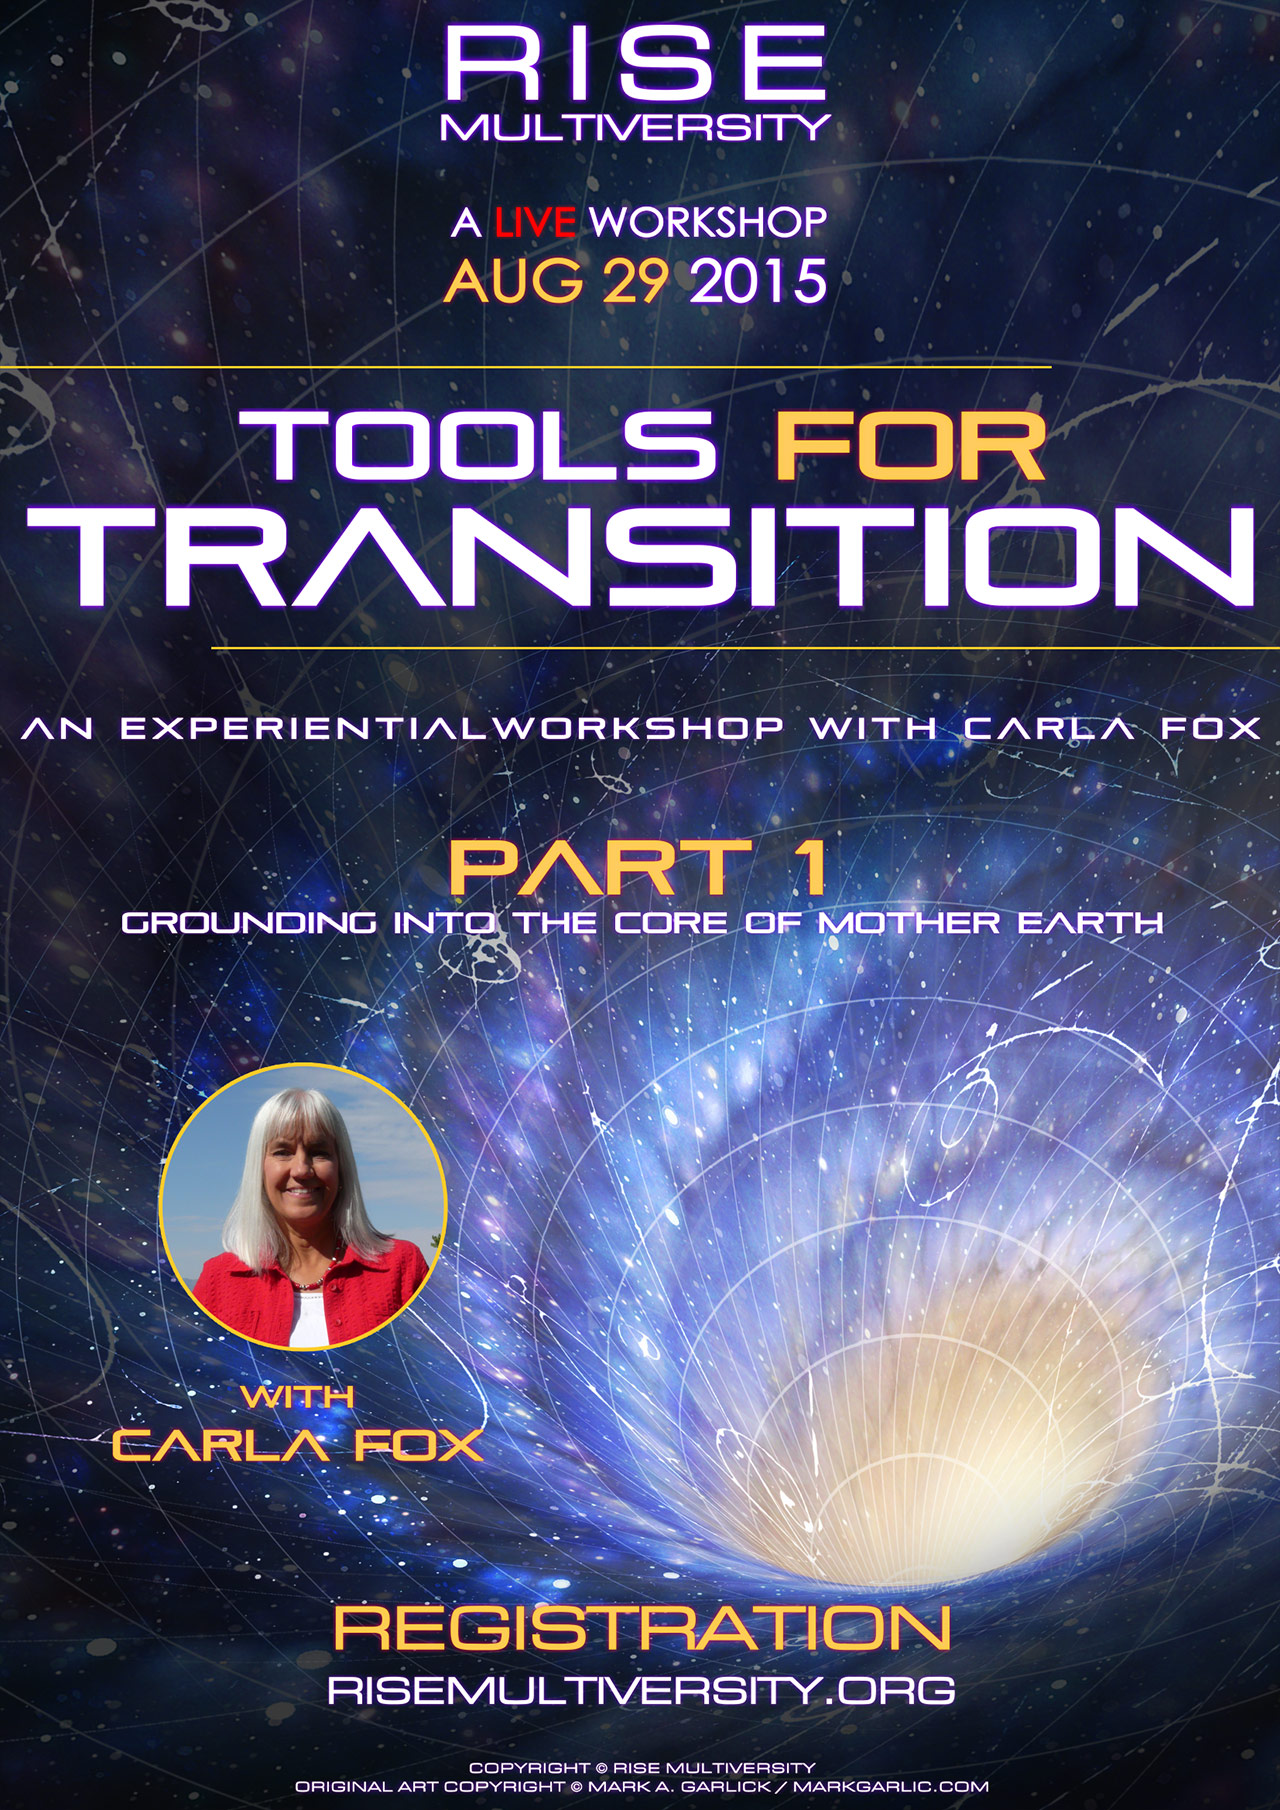 Tools For Intension